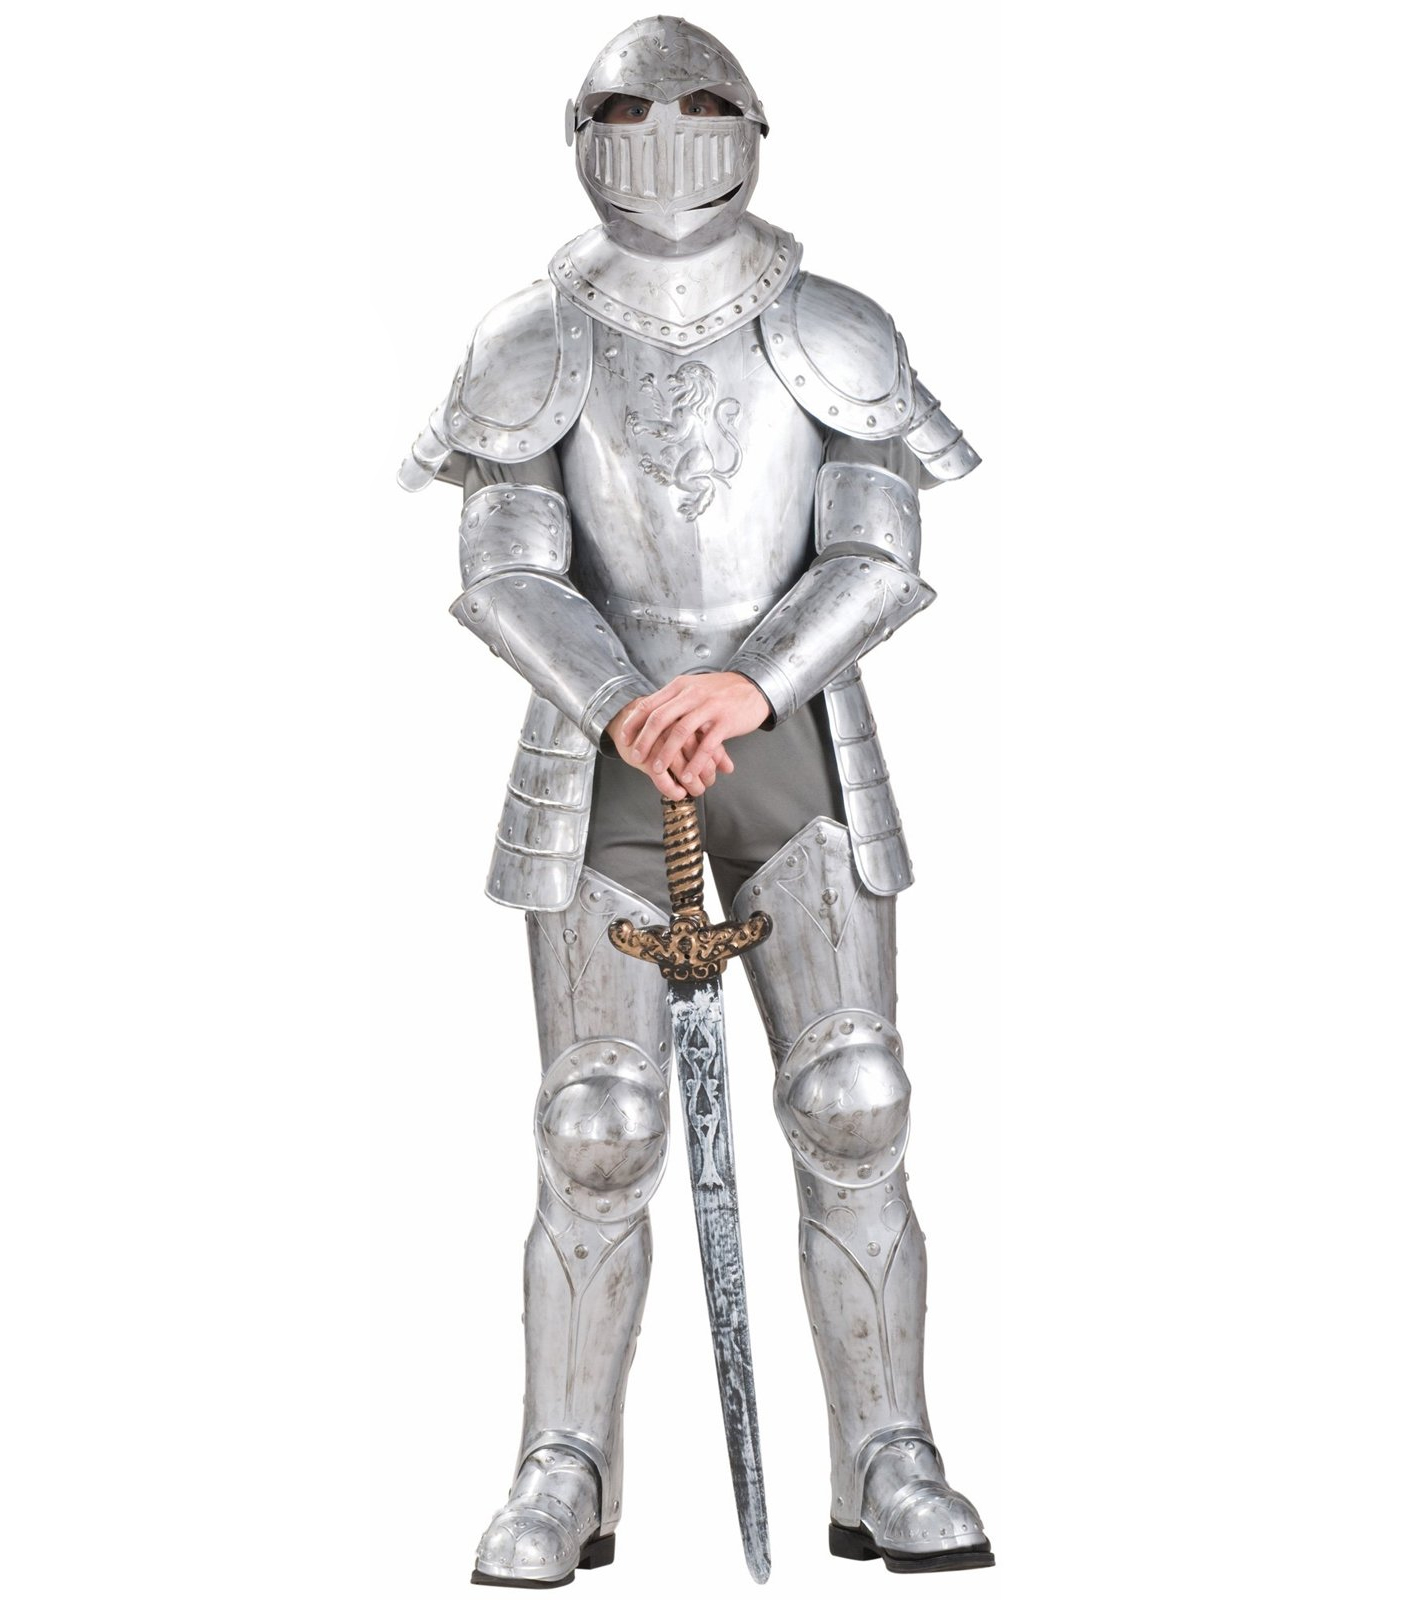 Forum Knight In Shining Armor Complete Costume, Silver, One Size - $148.31